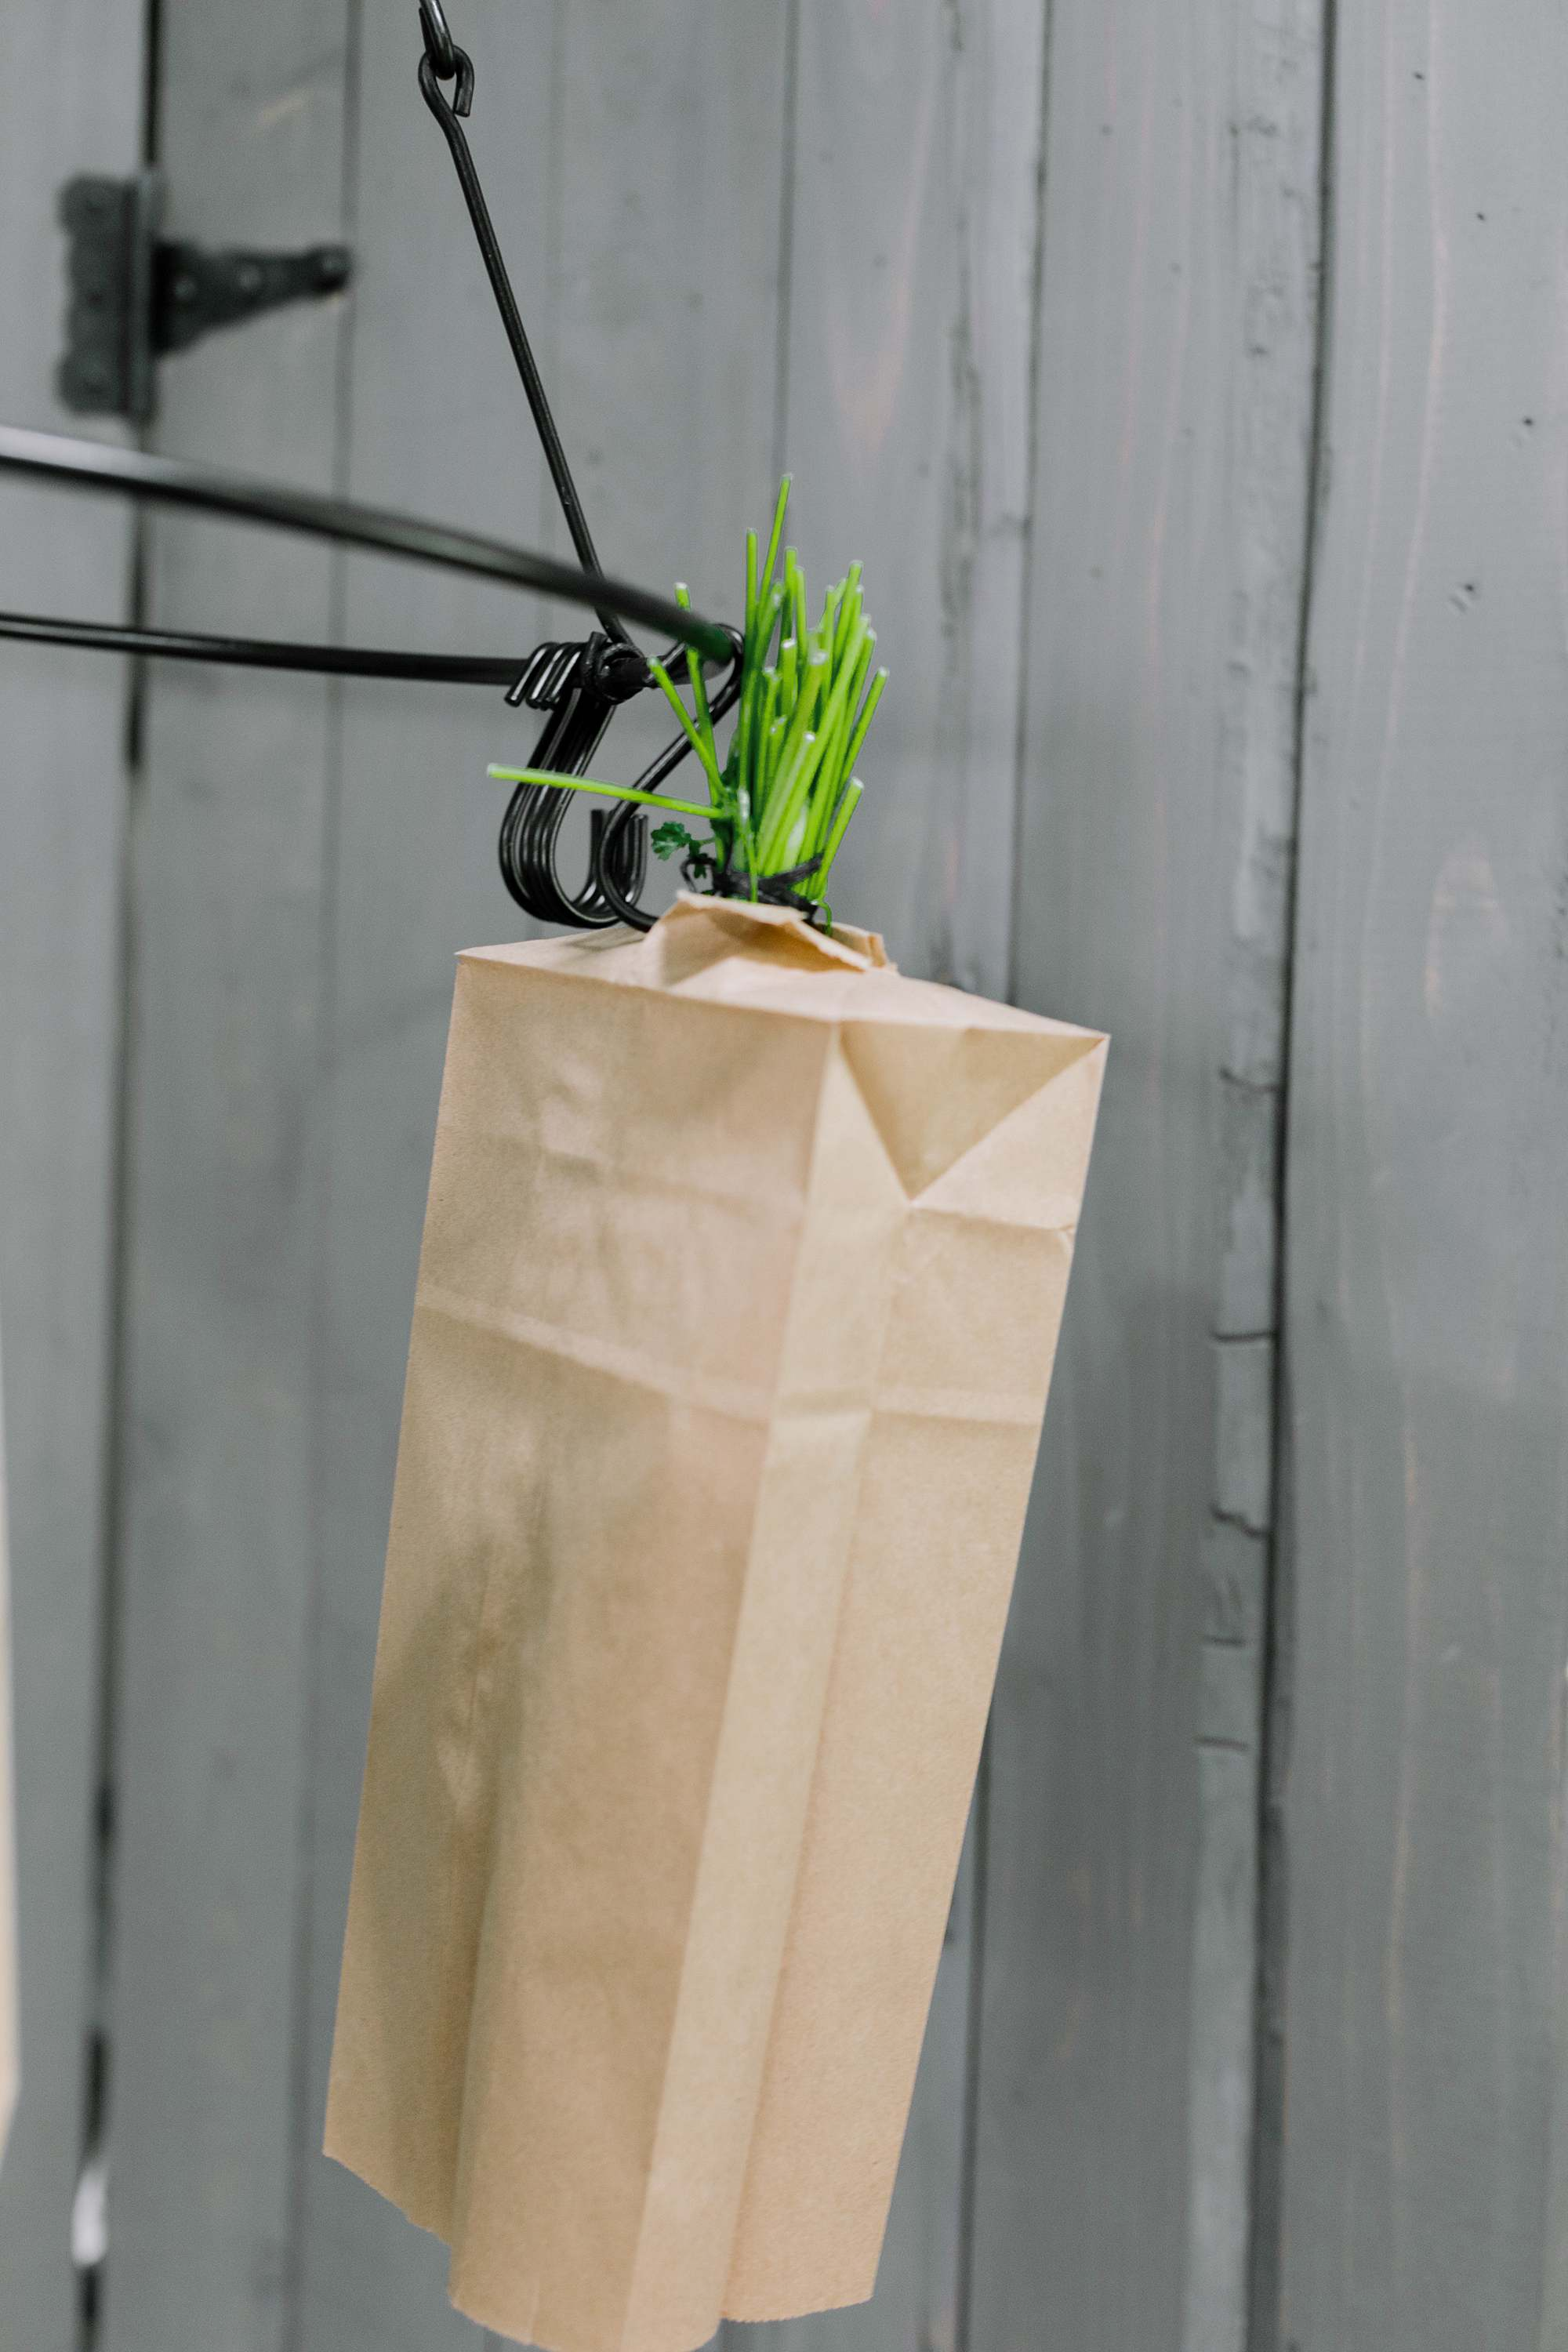 paper bag on drying herbs to keep dust off